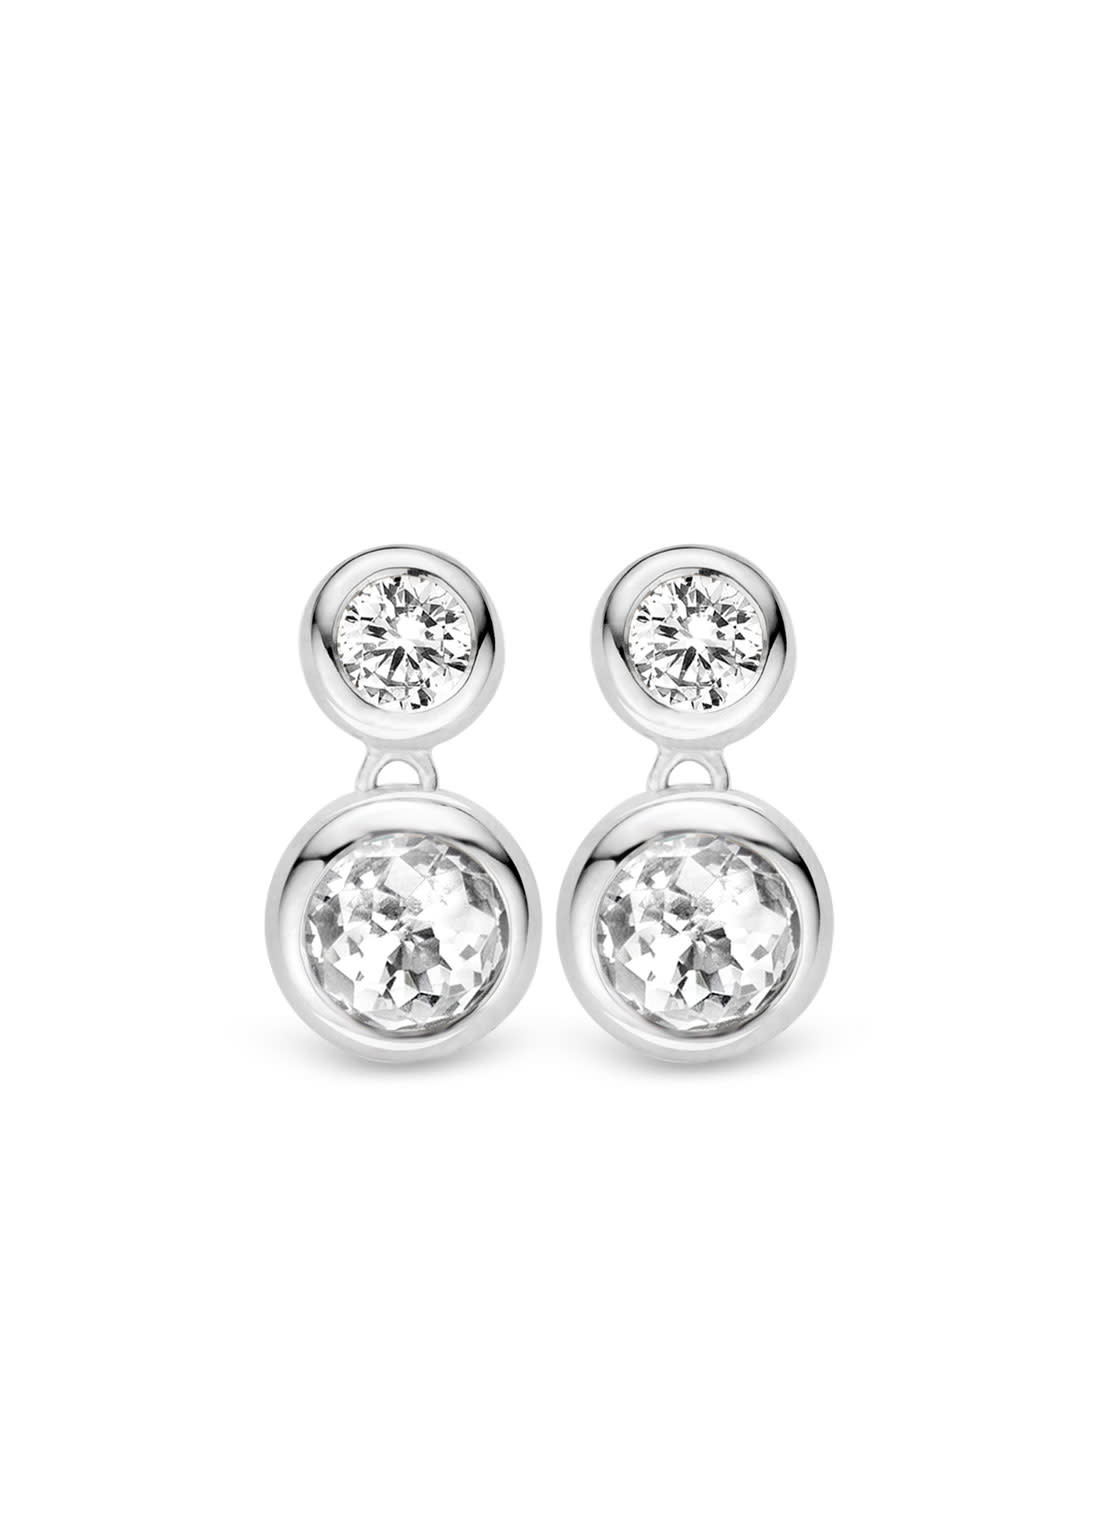 TI SENTO - Milano Earrings 7746ZI-2